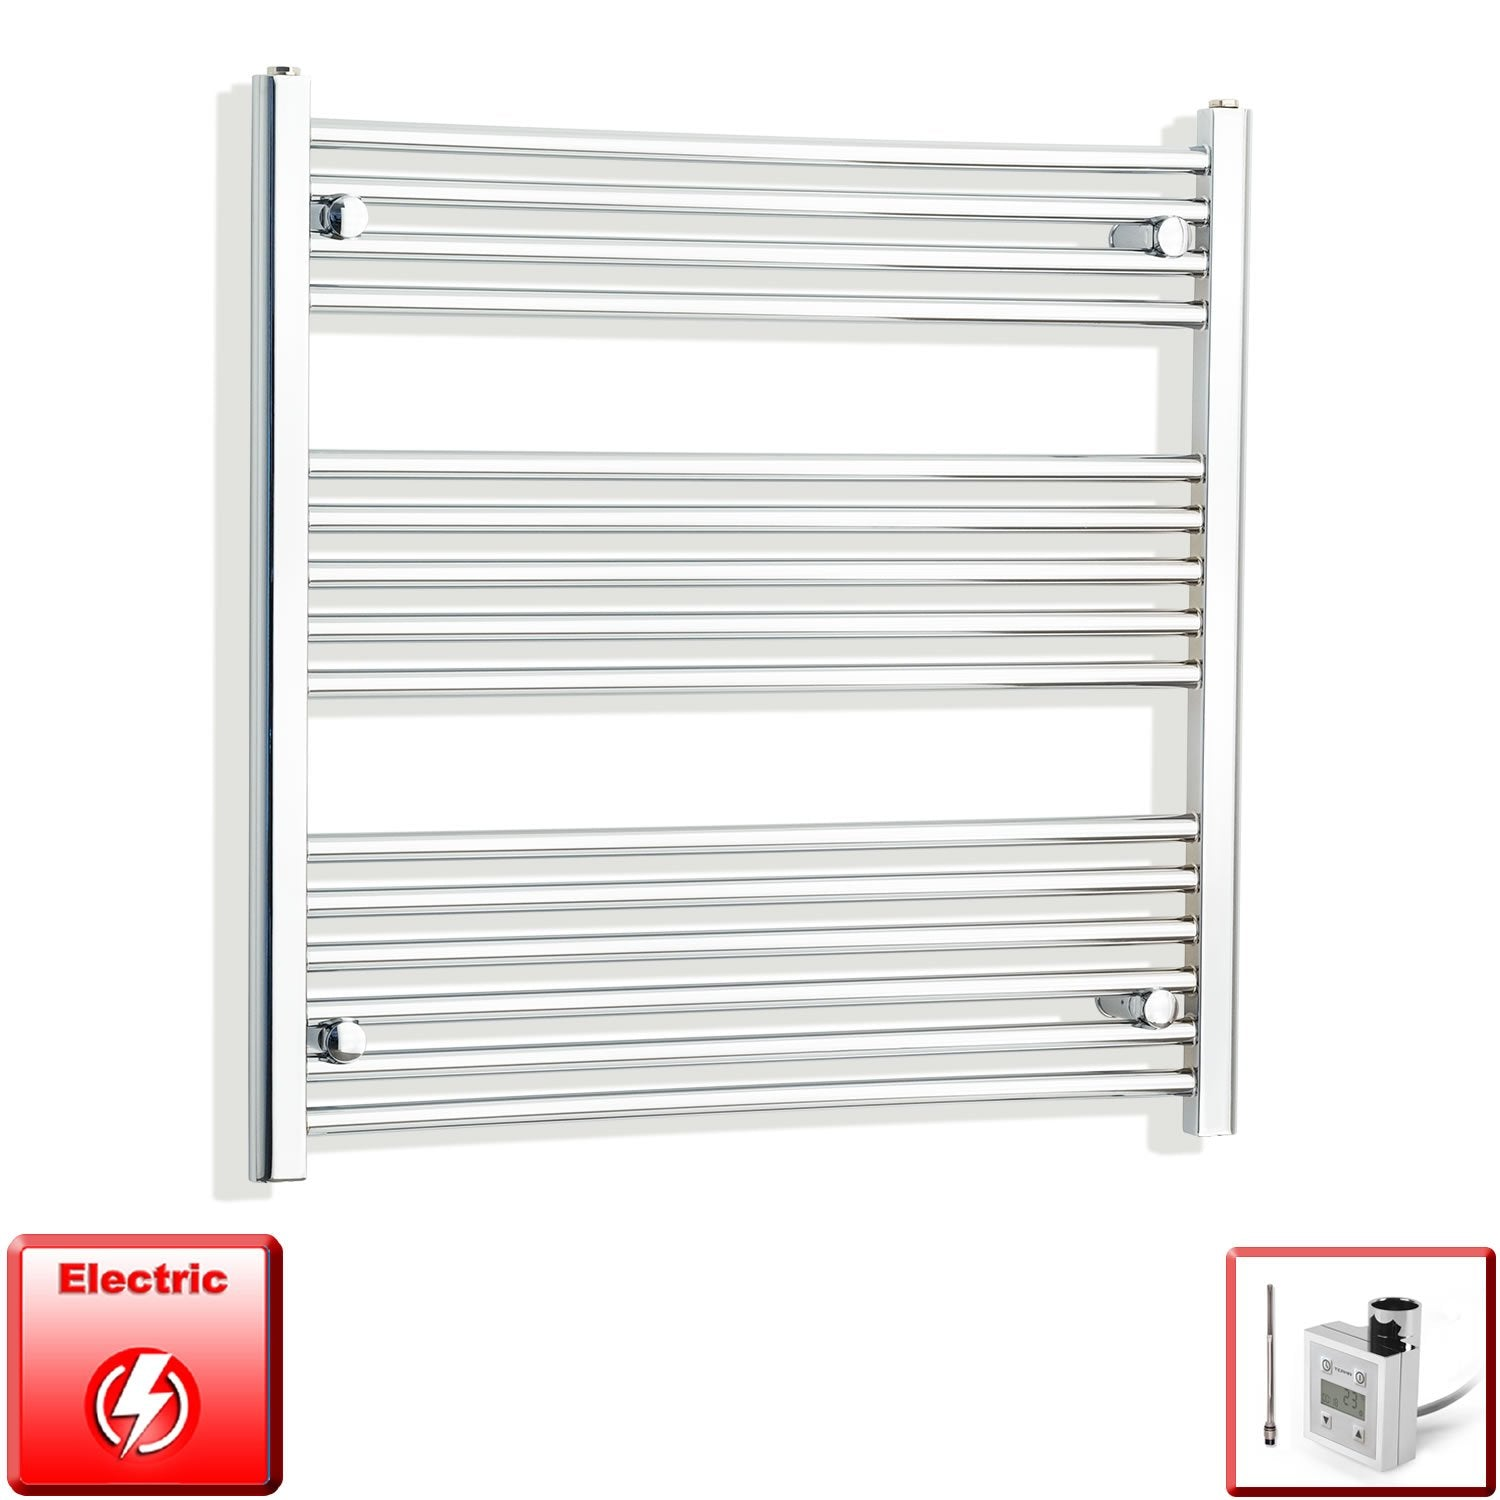 750mm Wide 800mm High Flat Or Curved Chrome Pre-Filled Electric Heated Towel Rail Radiator HTR,KTX-3 Thermostatic Element / Straight